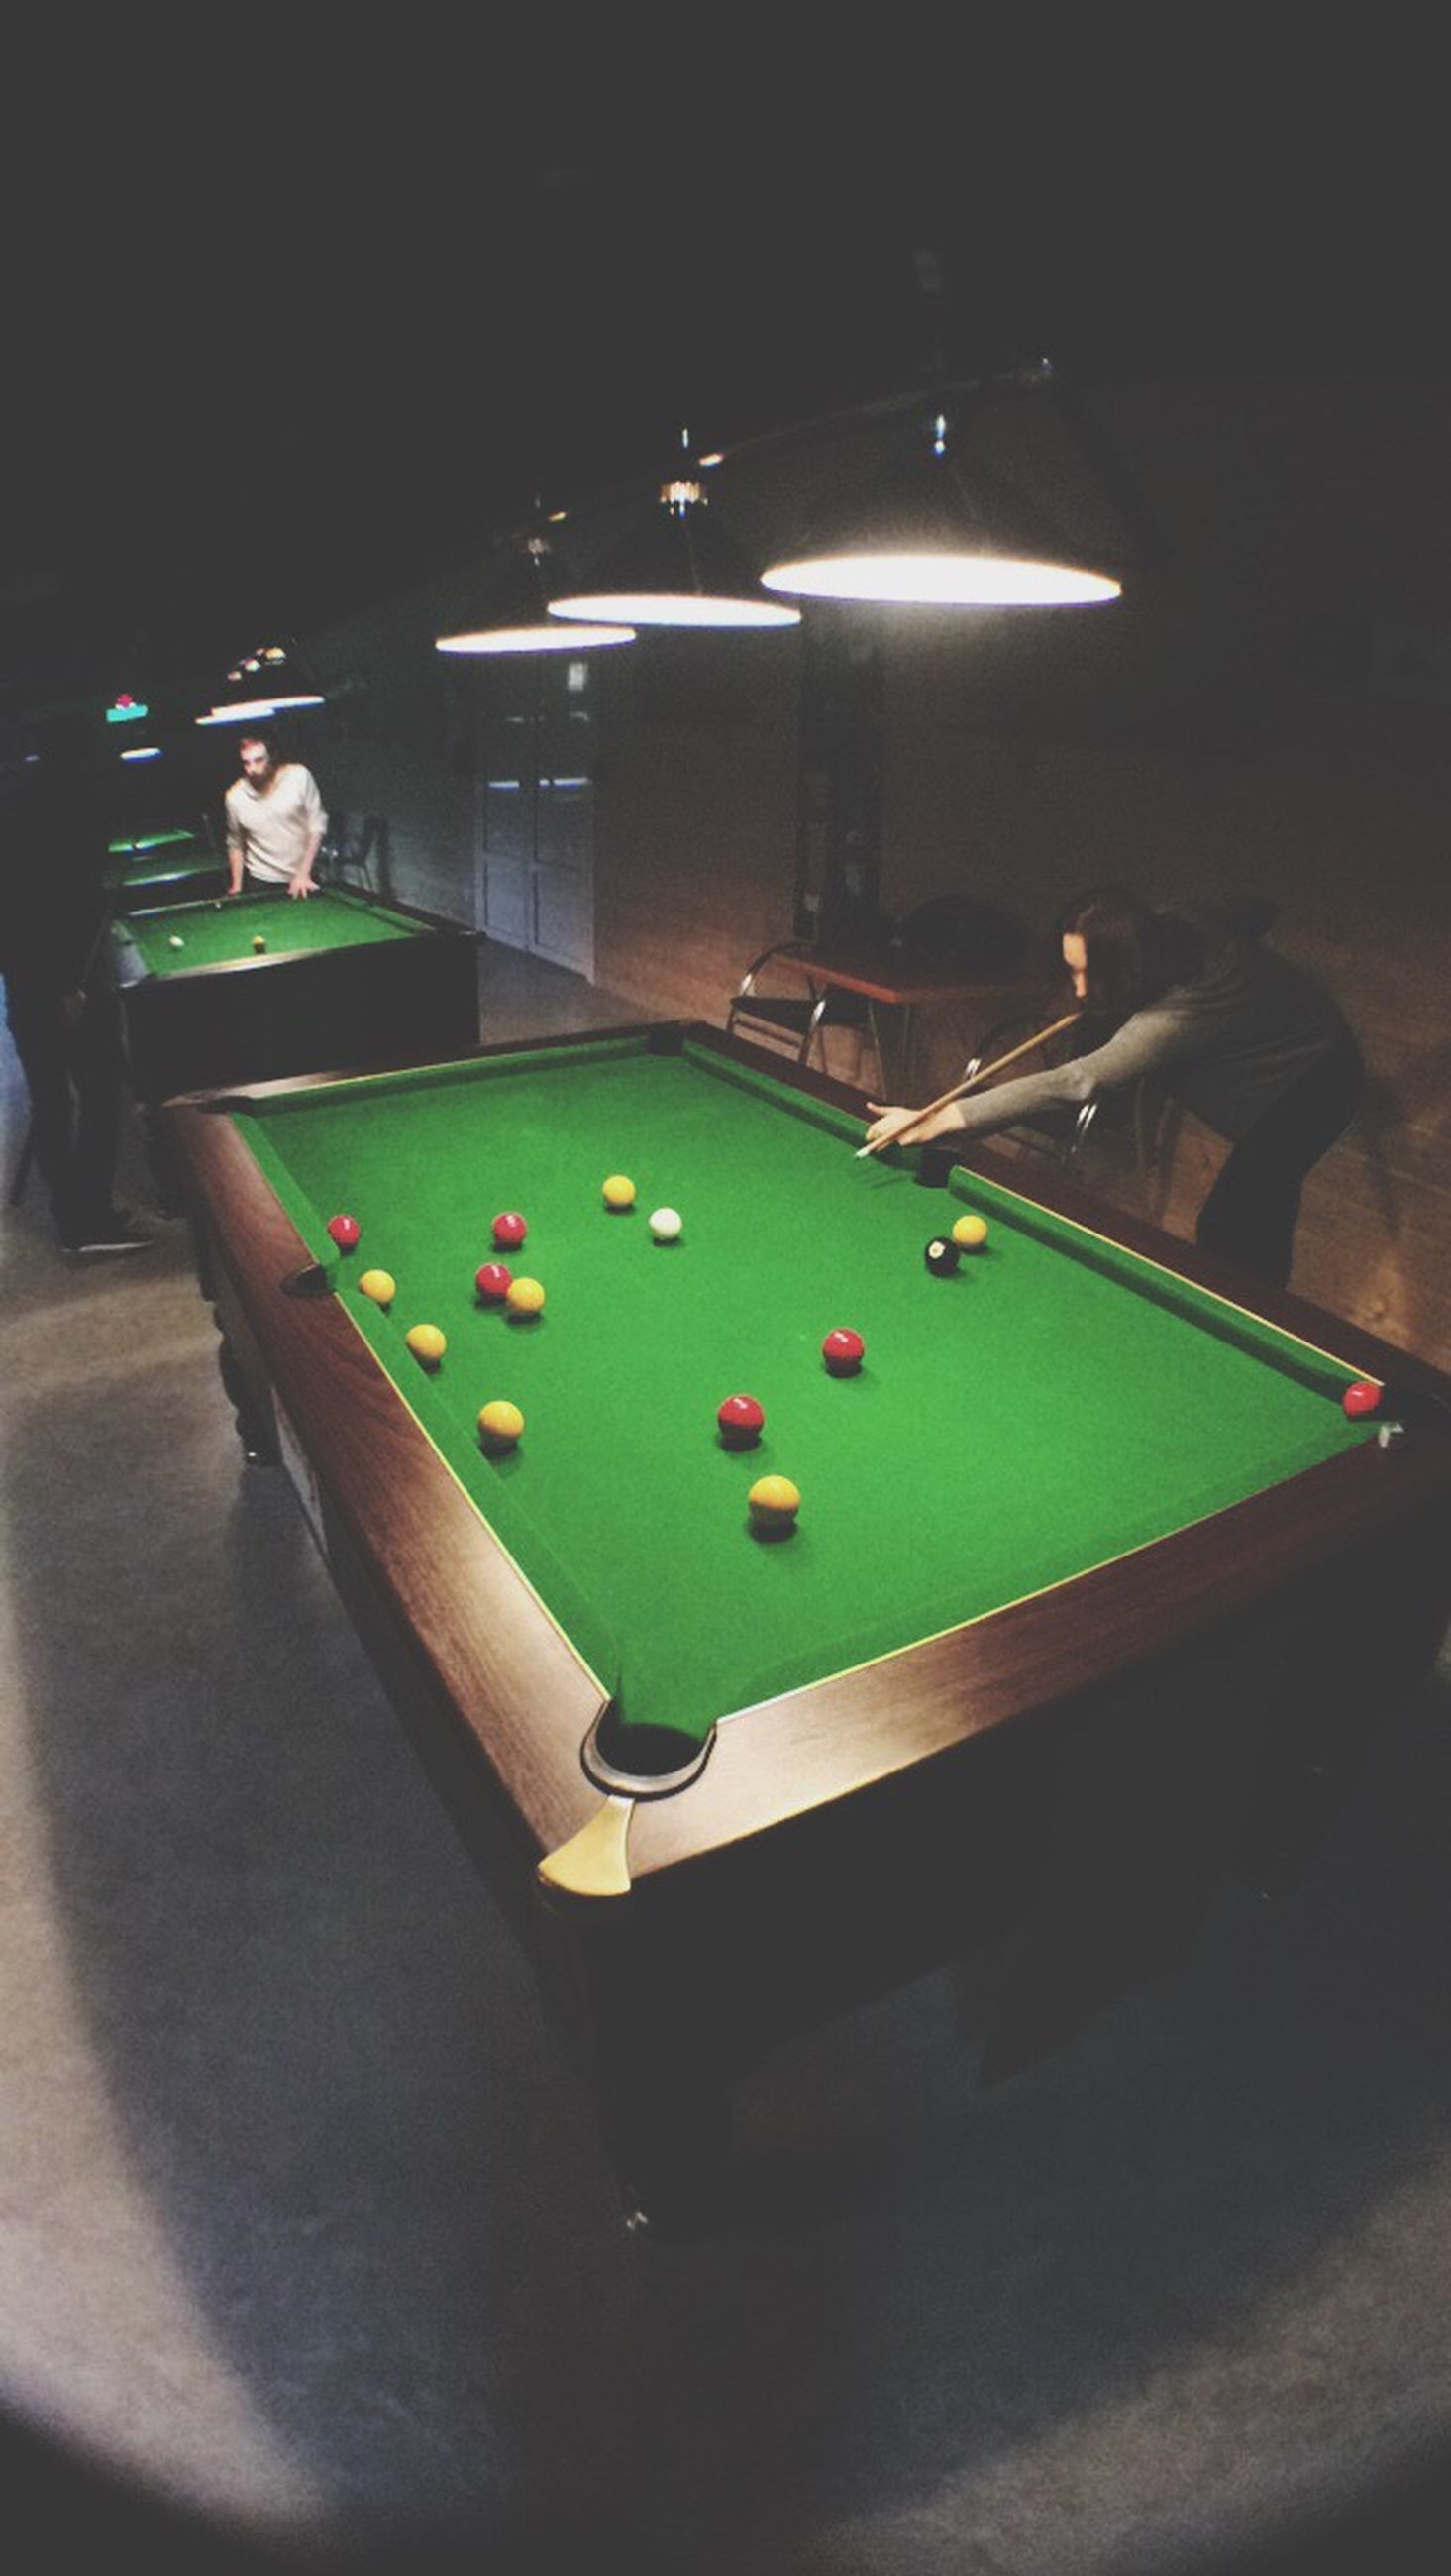 leisure activity, lifestyles, high angle view, green color, indoors, multi colored, men, illuminated, playing, night, sport, fun, sitting, person, blue, arts culture and entertainment, childhood, enjoyment